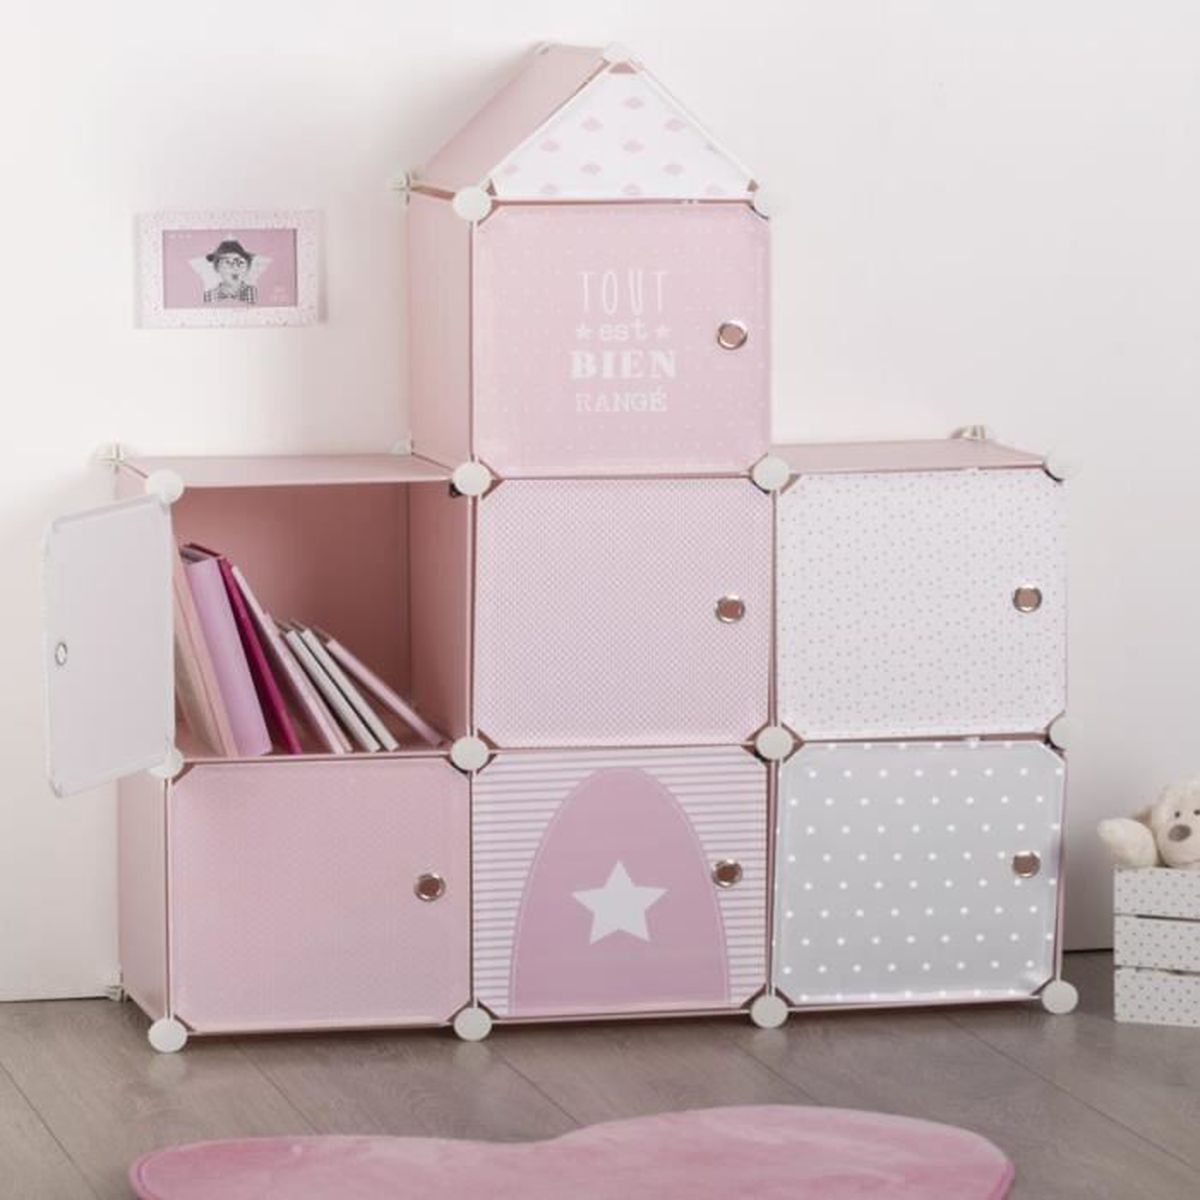 meuble de rangement chateau rose autres rose achat. Black Bedroom Furniture Sets. Home Design Ideas